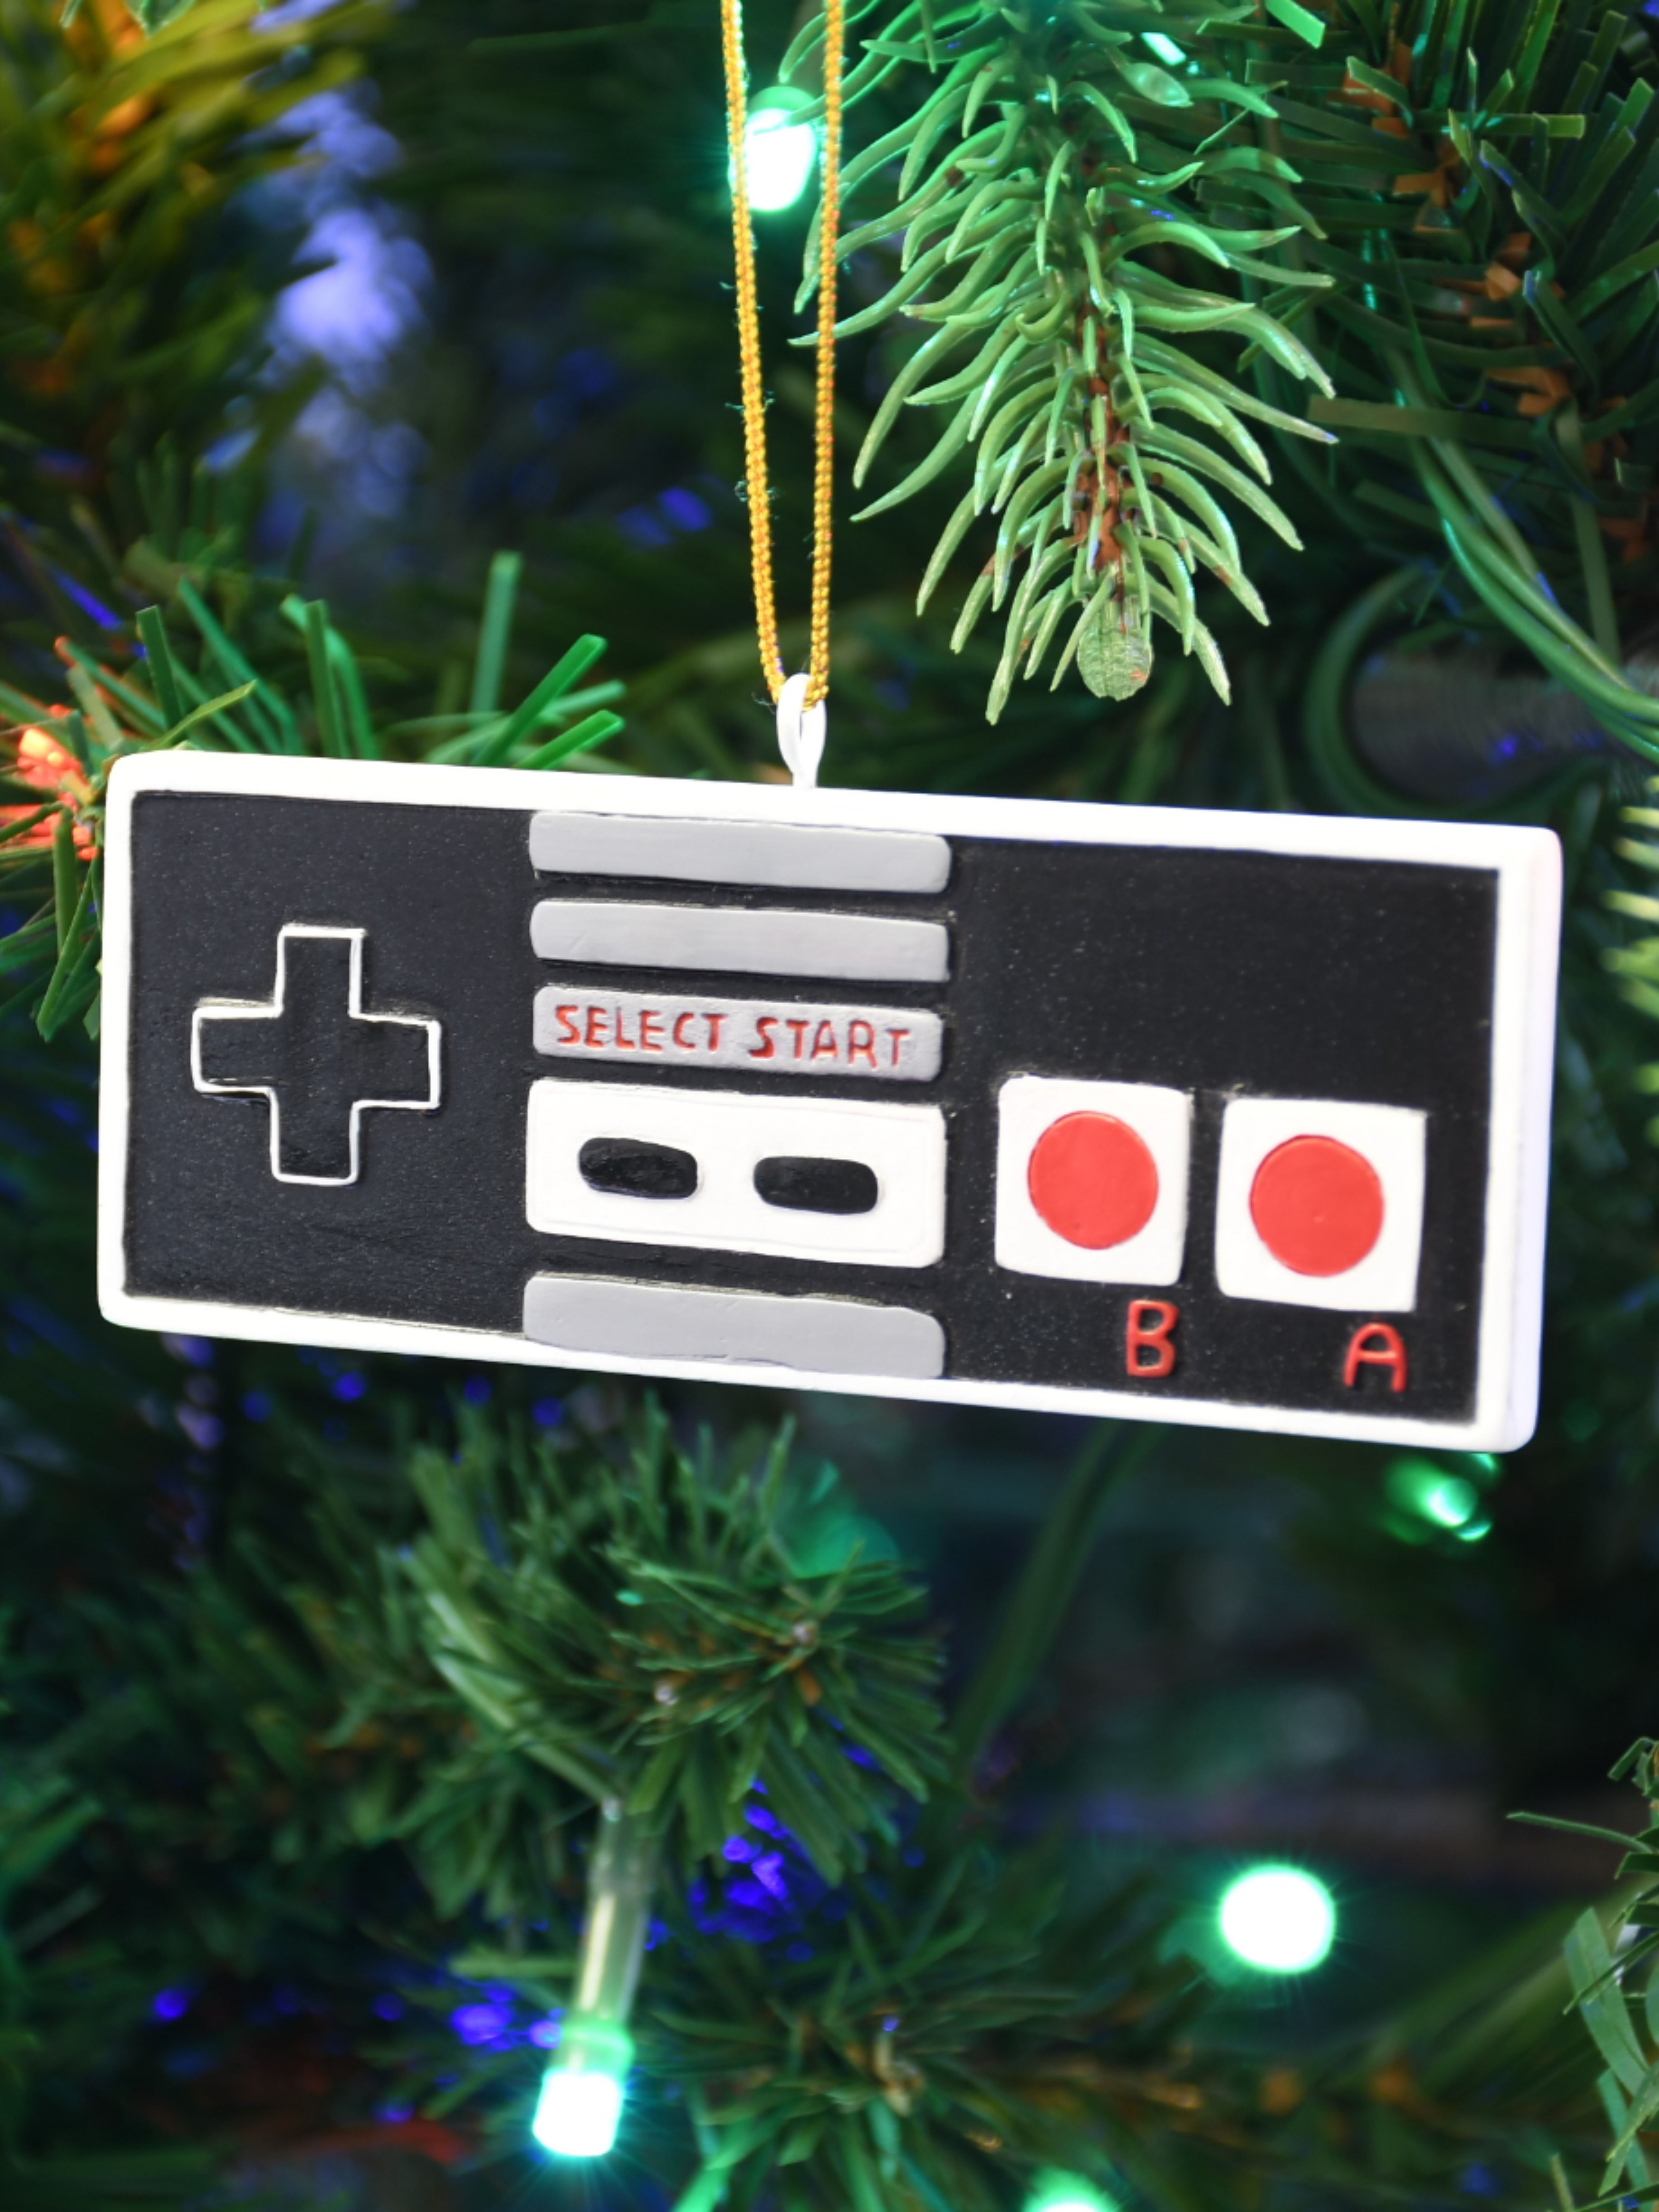 Throwback Thursday In 2020 Christmas Ornaments Unique Christmas Ornaments Retro Video Games